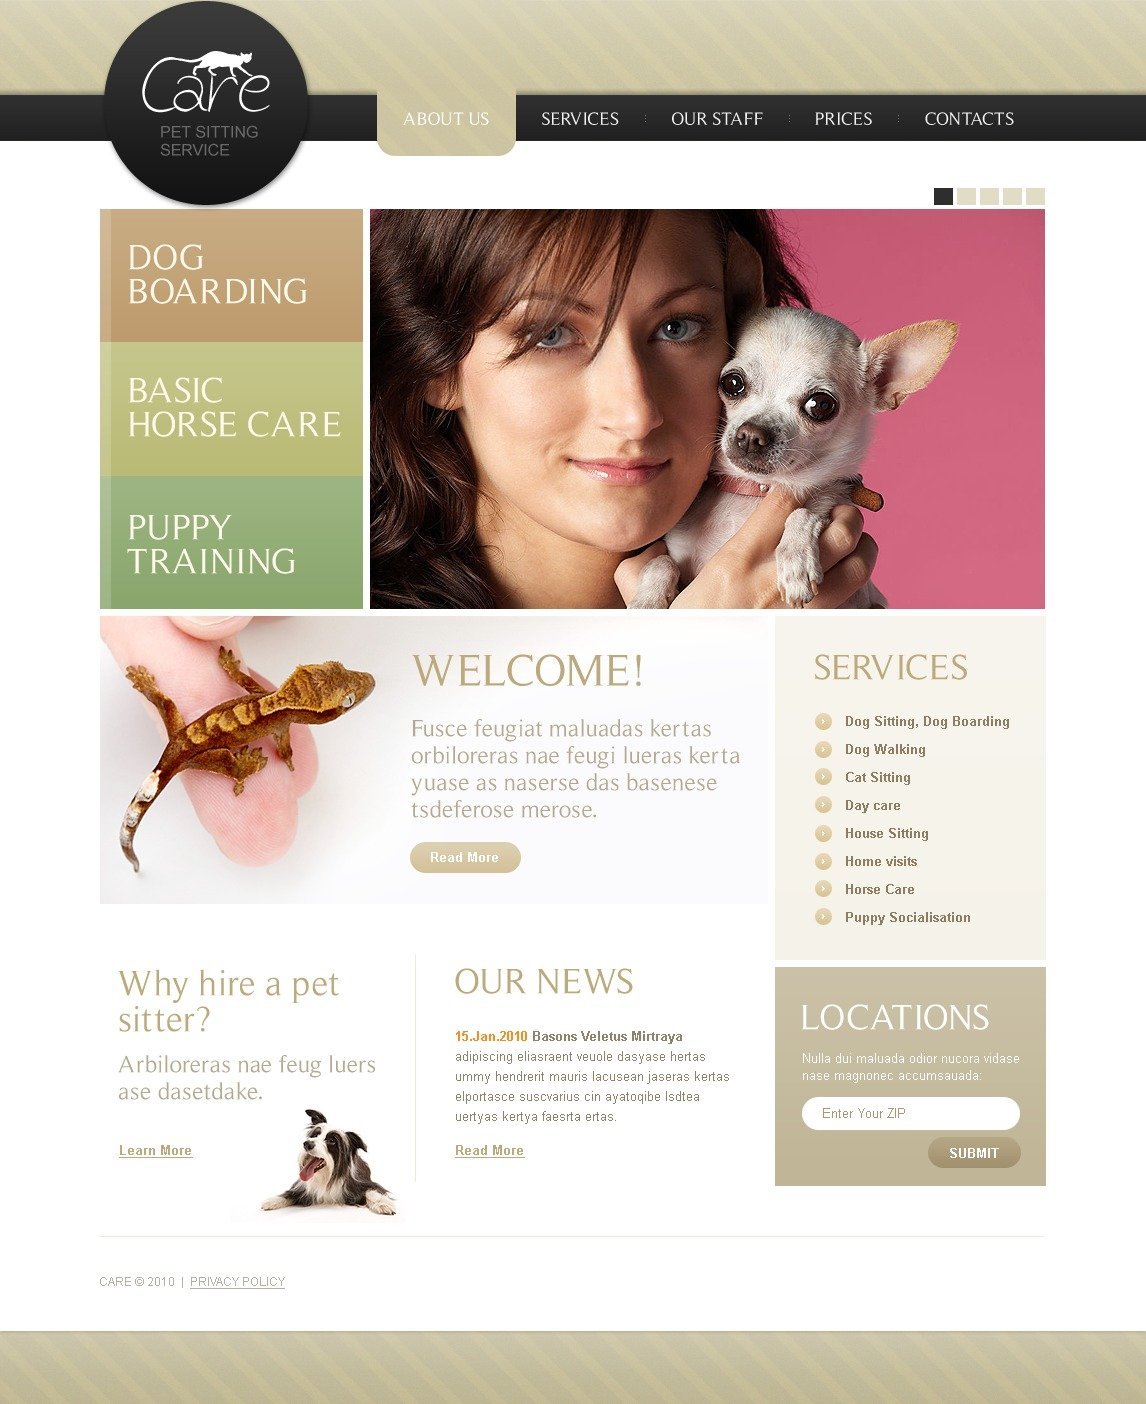 Pet sitting website template 30396 for Dog boarding website